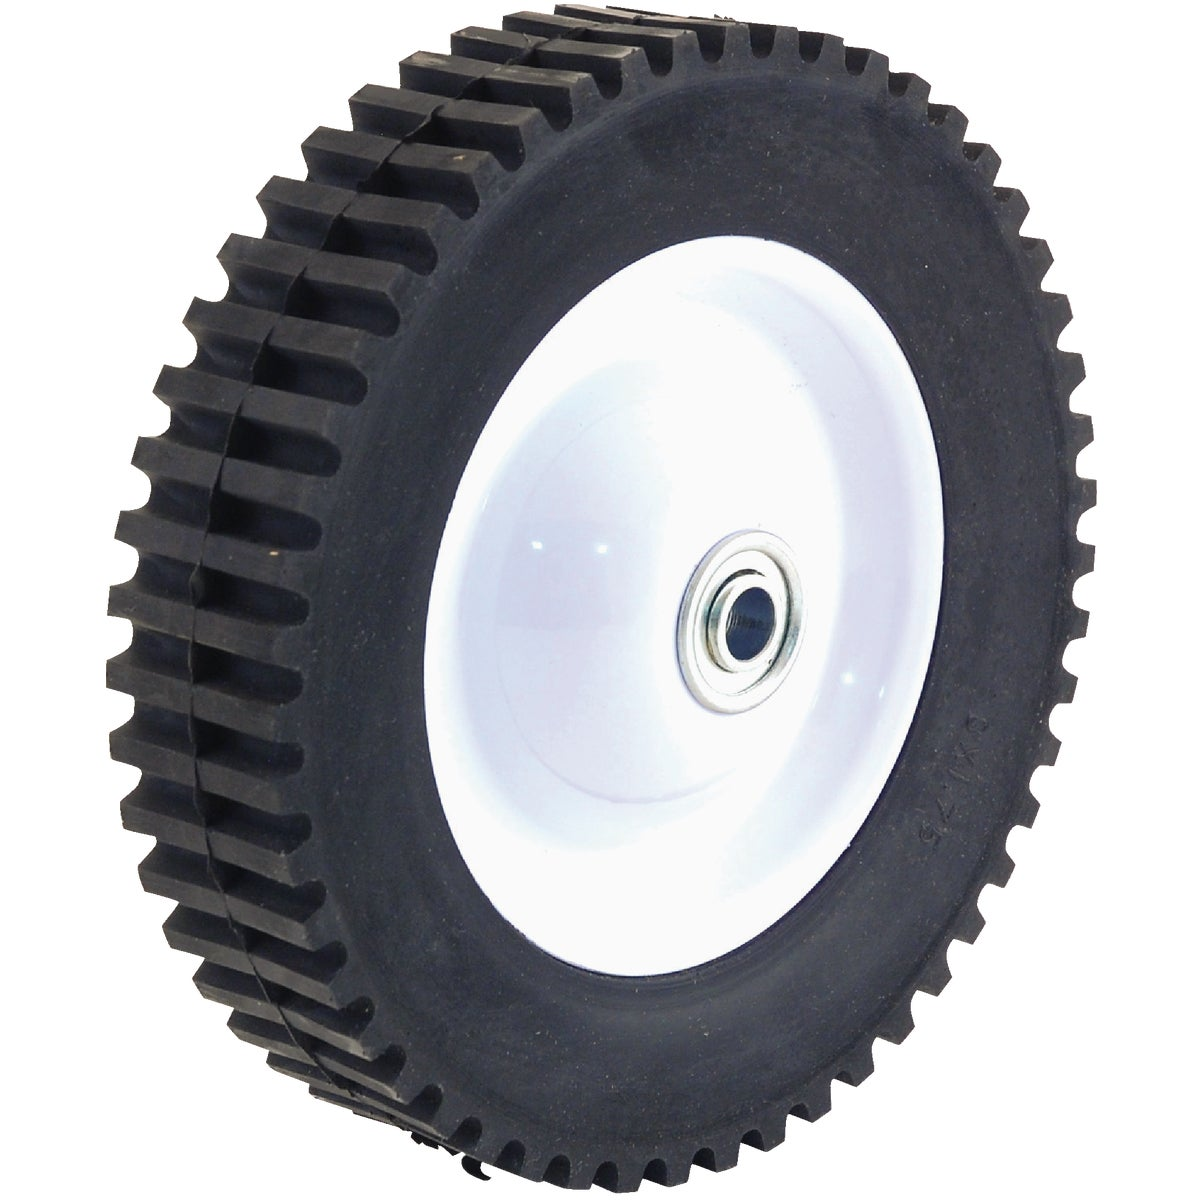 8X1.75 GEAR TREAD WHEEL - 490-322-0006 by Arnold Corp